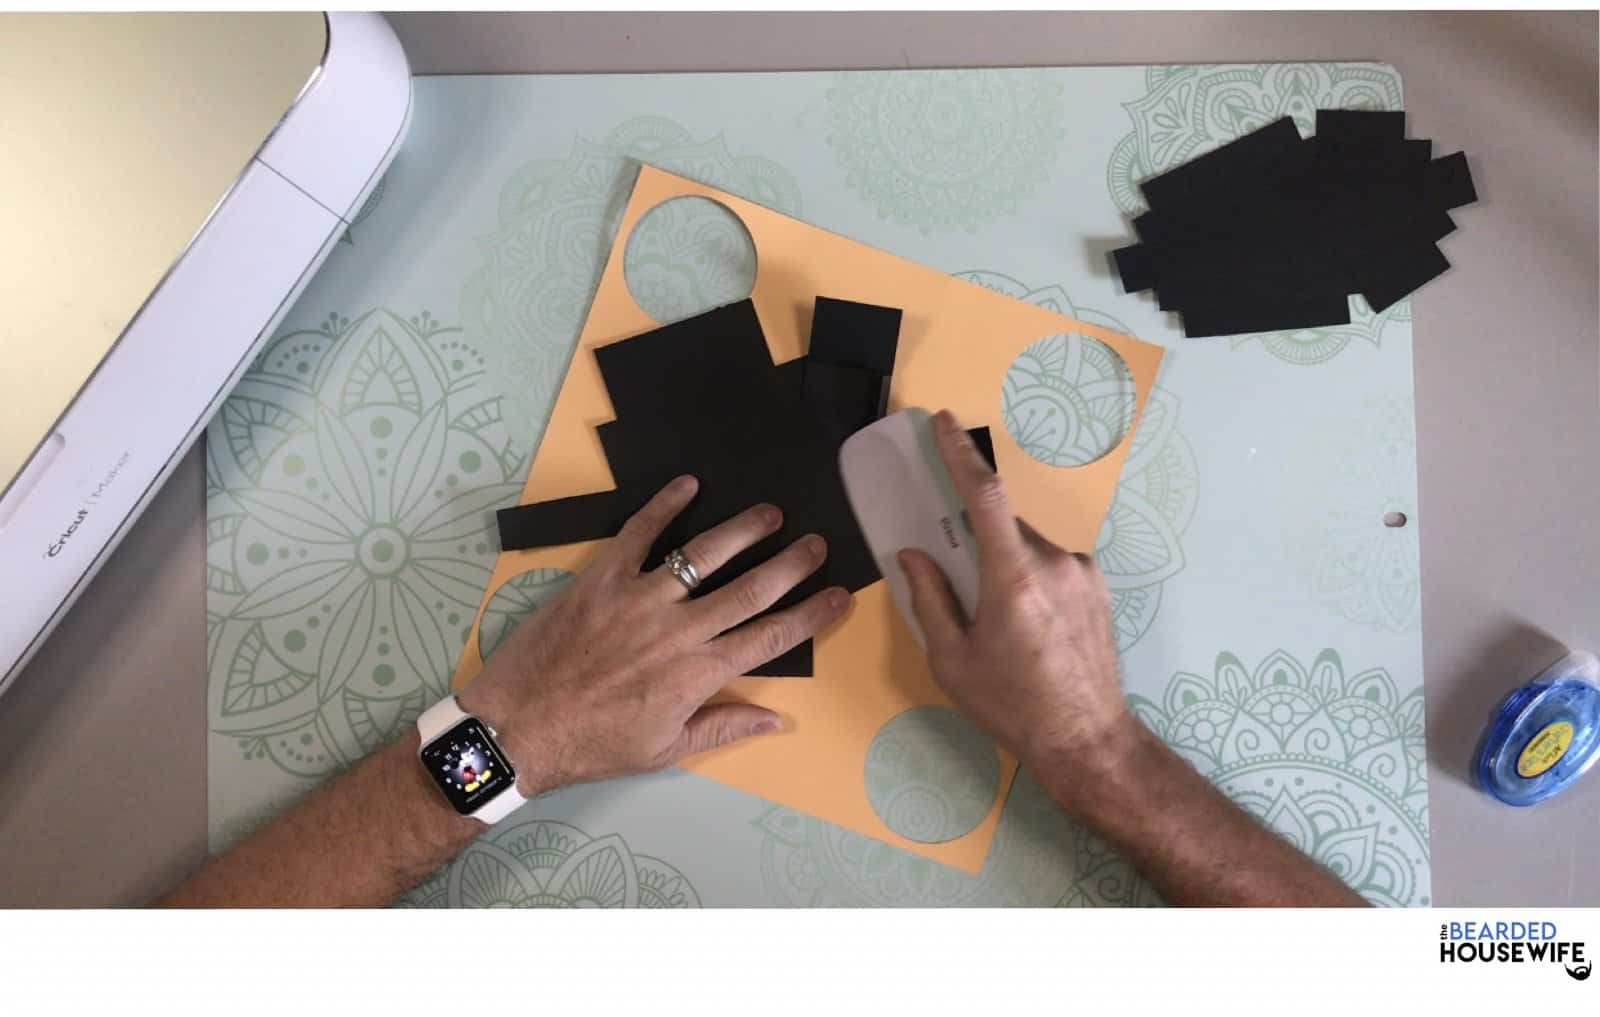 press the fold with your scraper